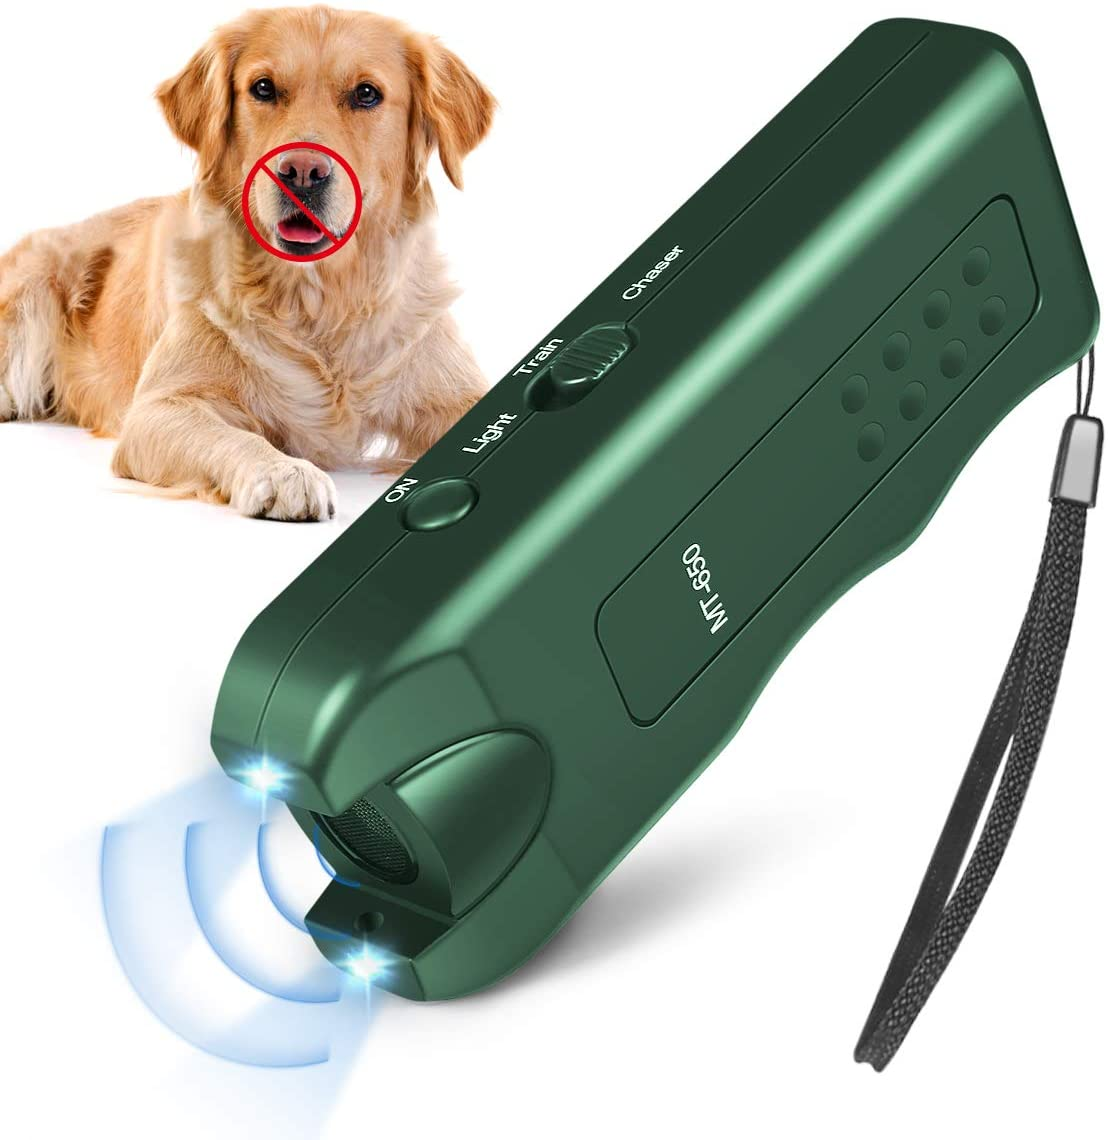 Best Bark Control Devices